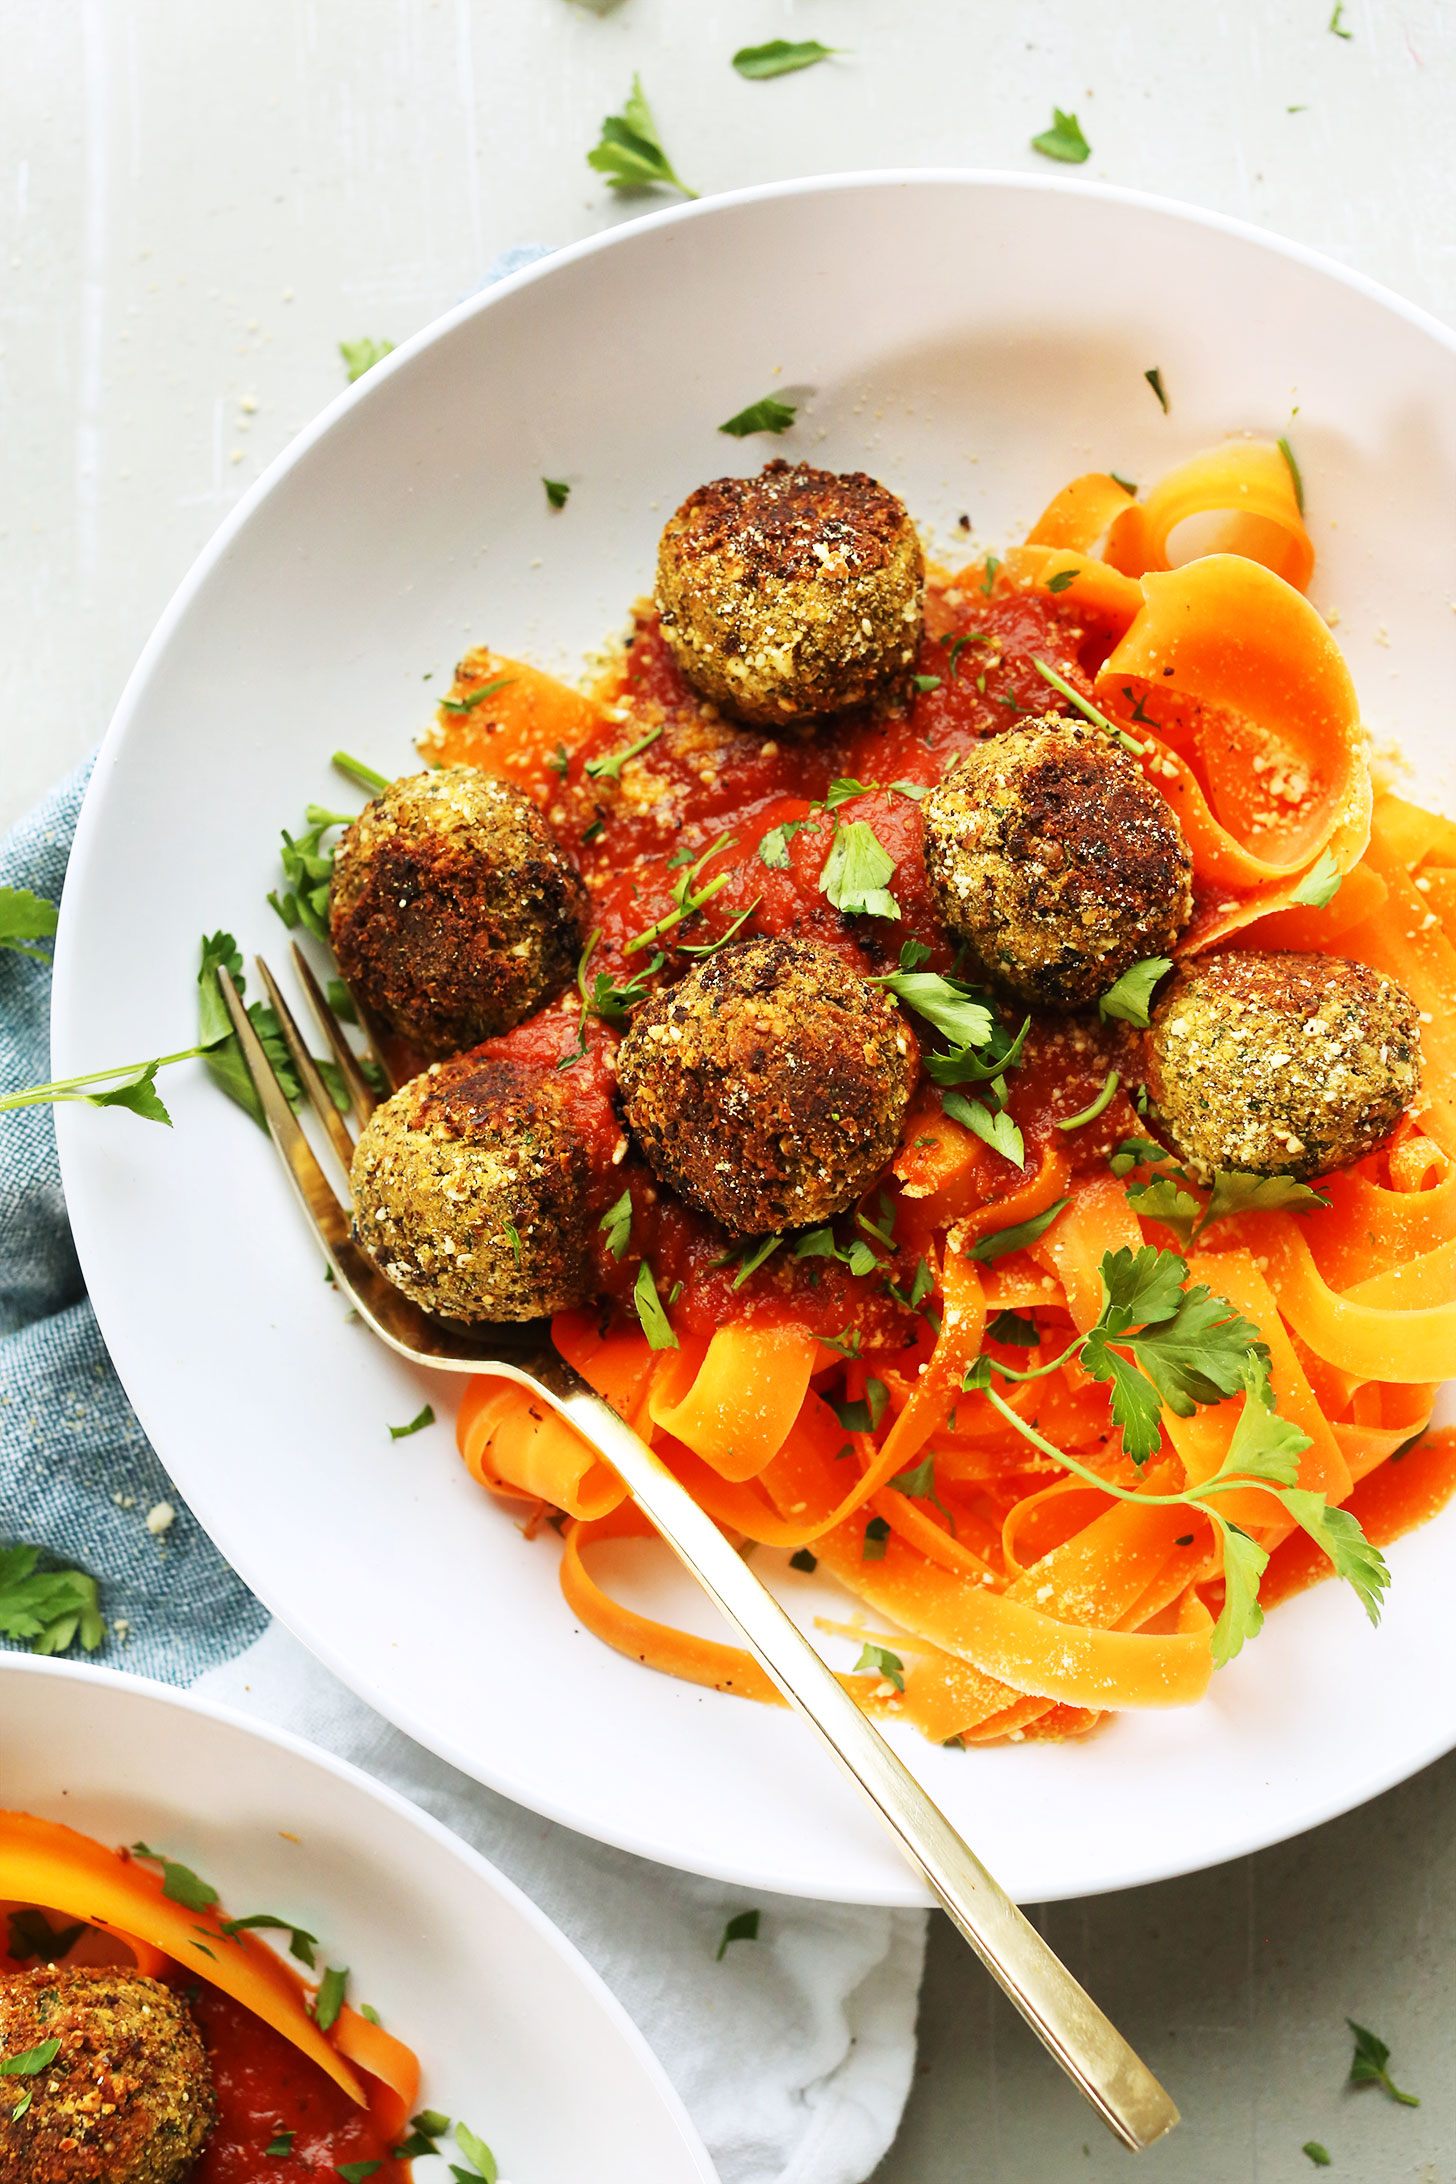 Original meatballs - 10 simple and delicious recipes 88